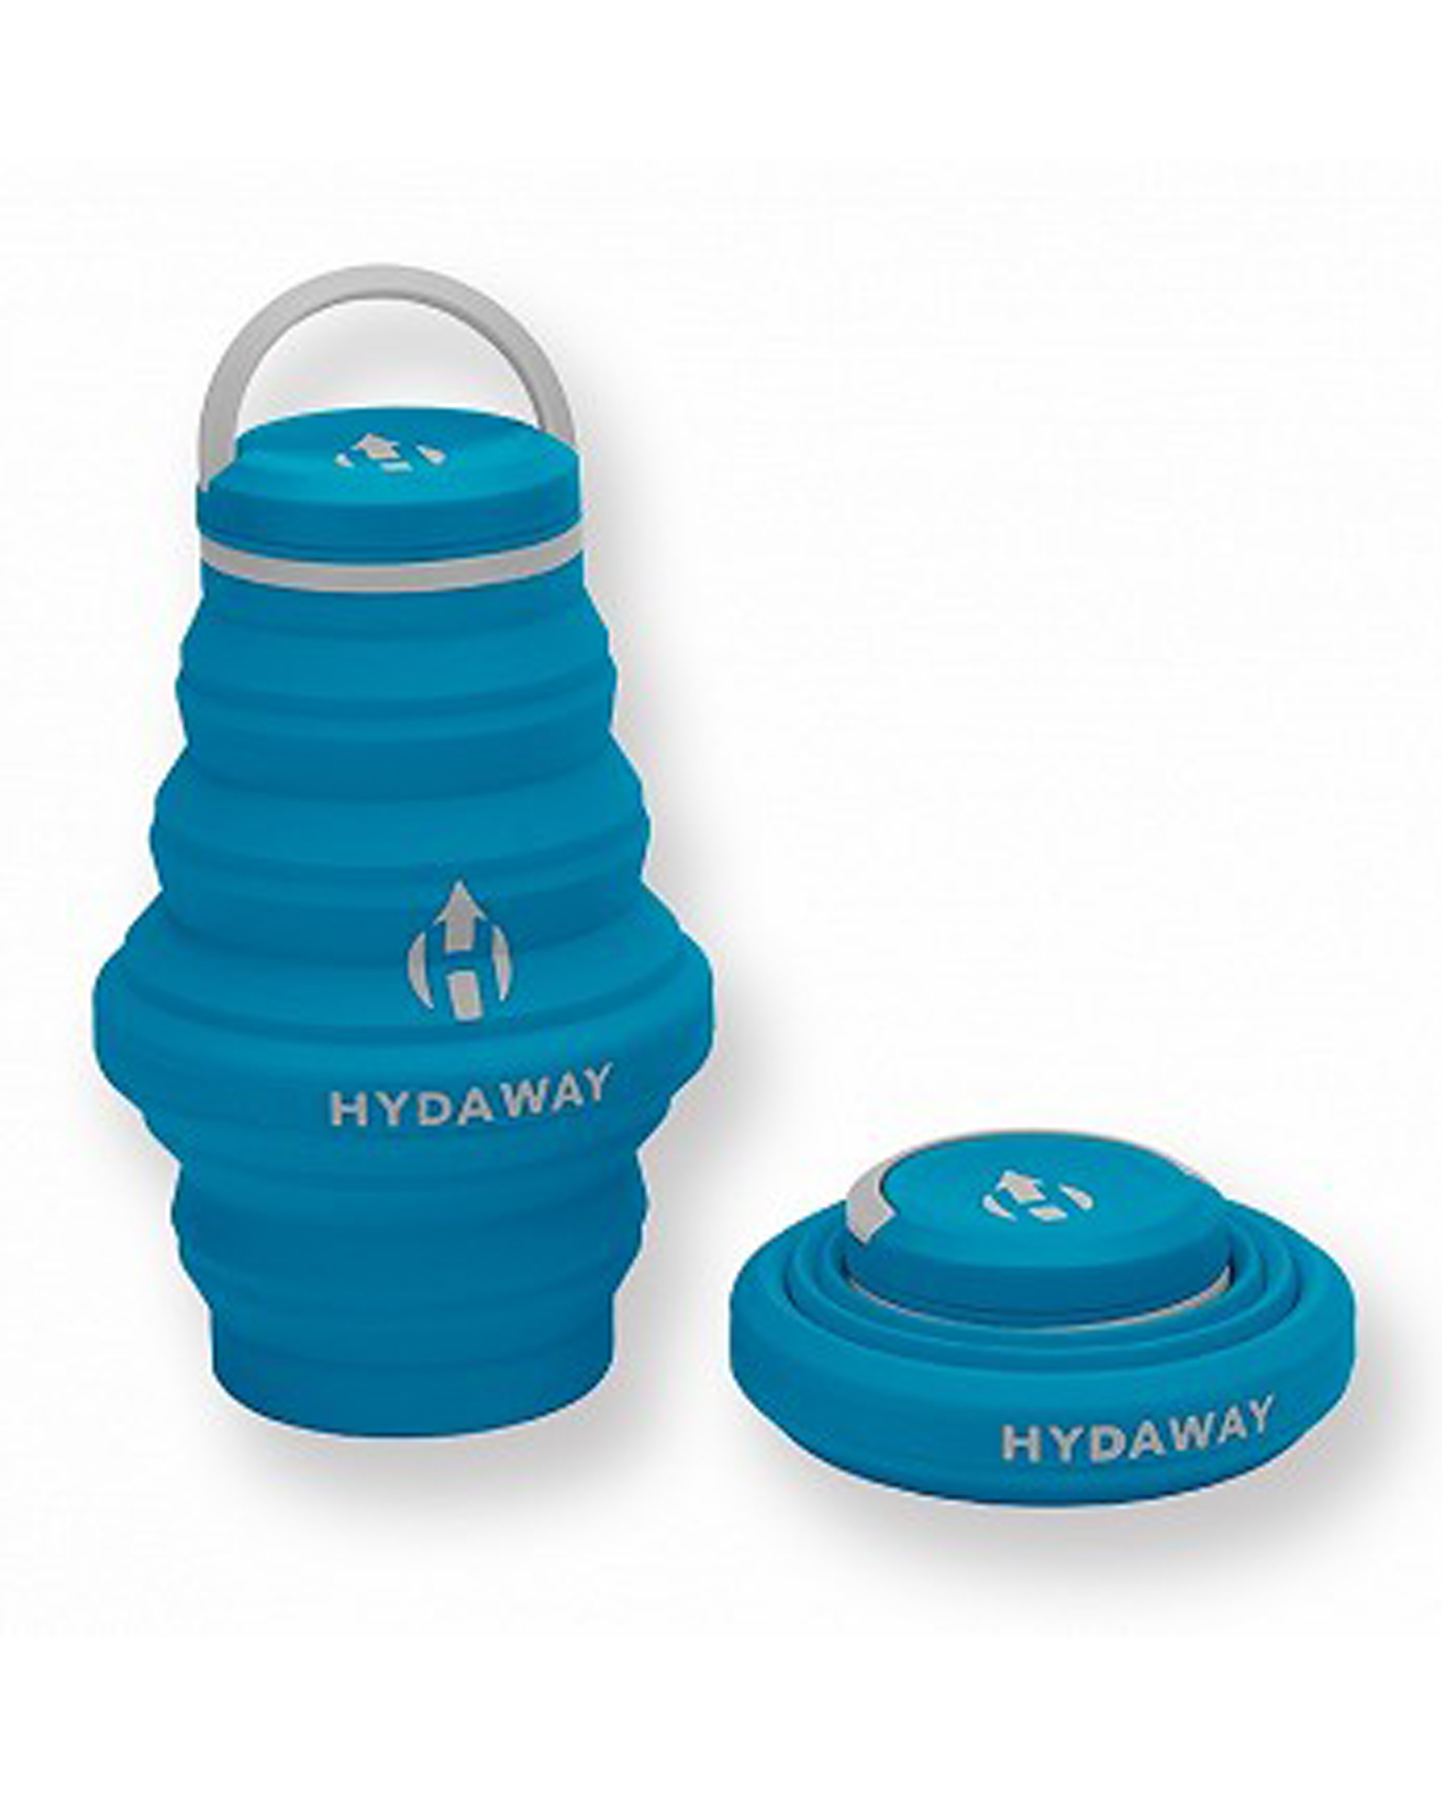 Best Stocking Stuffer Ideas for Men, Women, and Teens: Collapsible Water Bottle